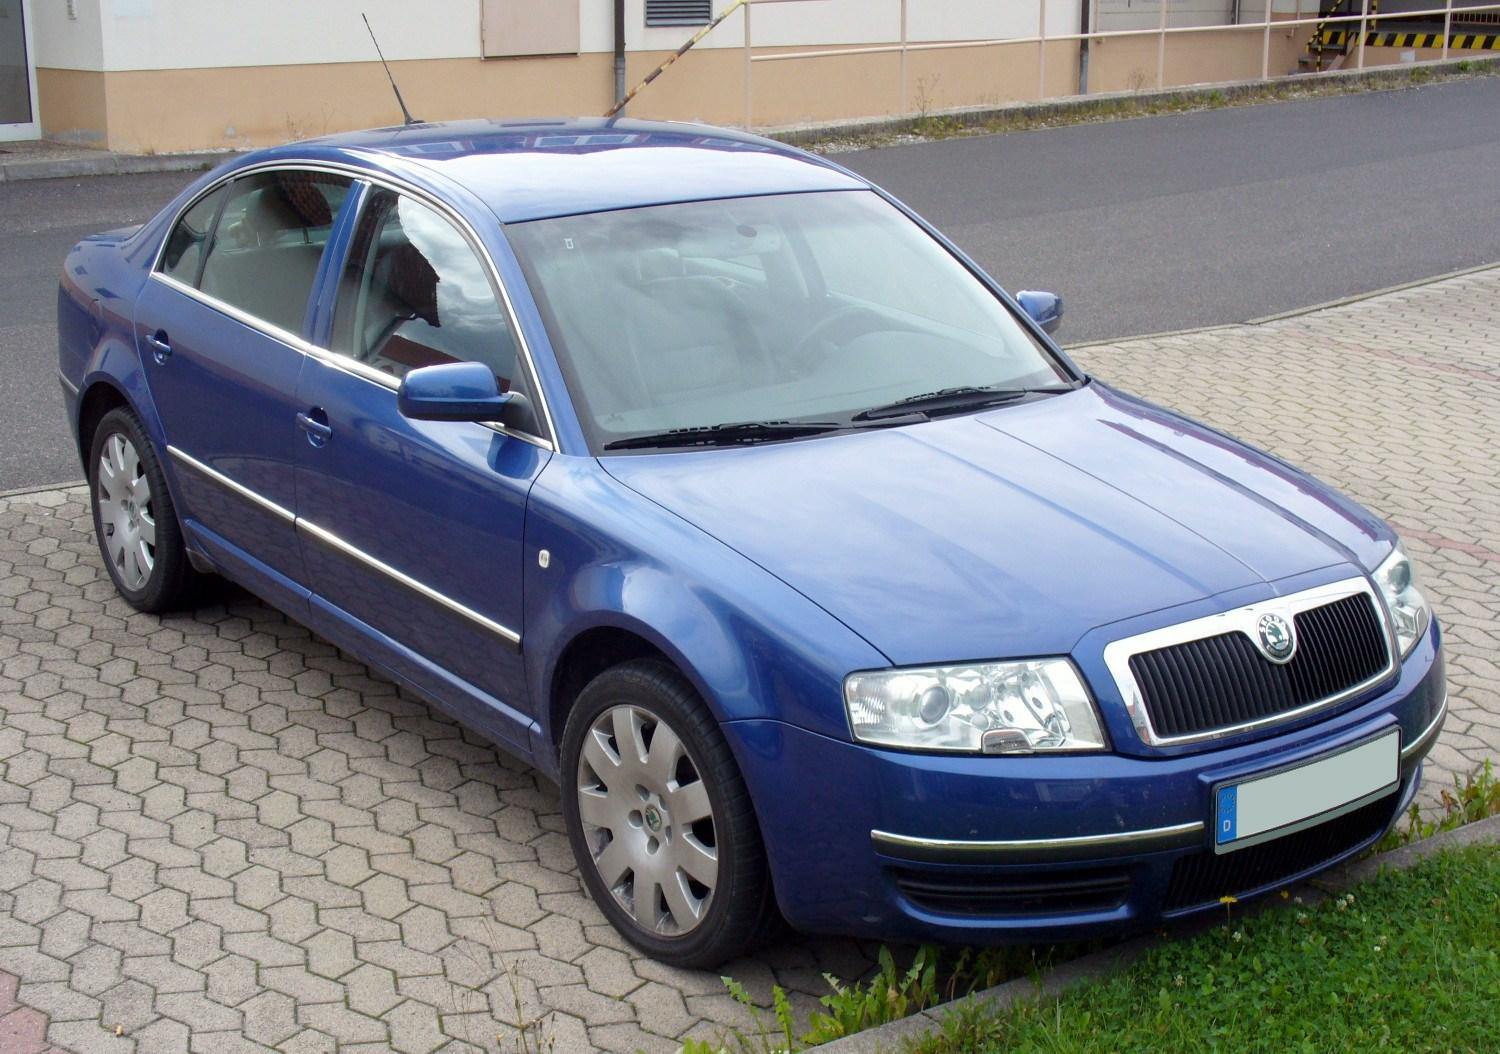 hight resolution of file skoda superb blau jpg